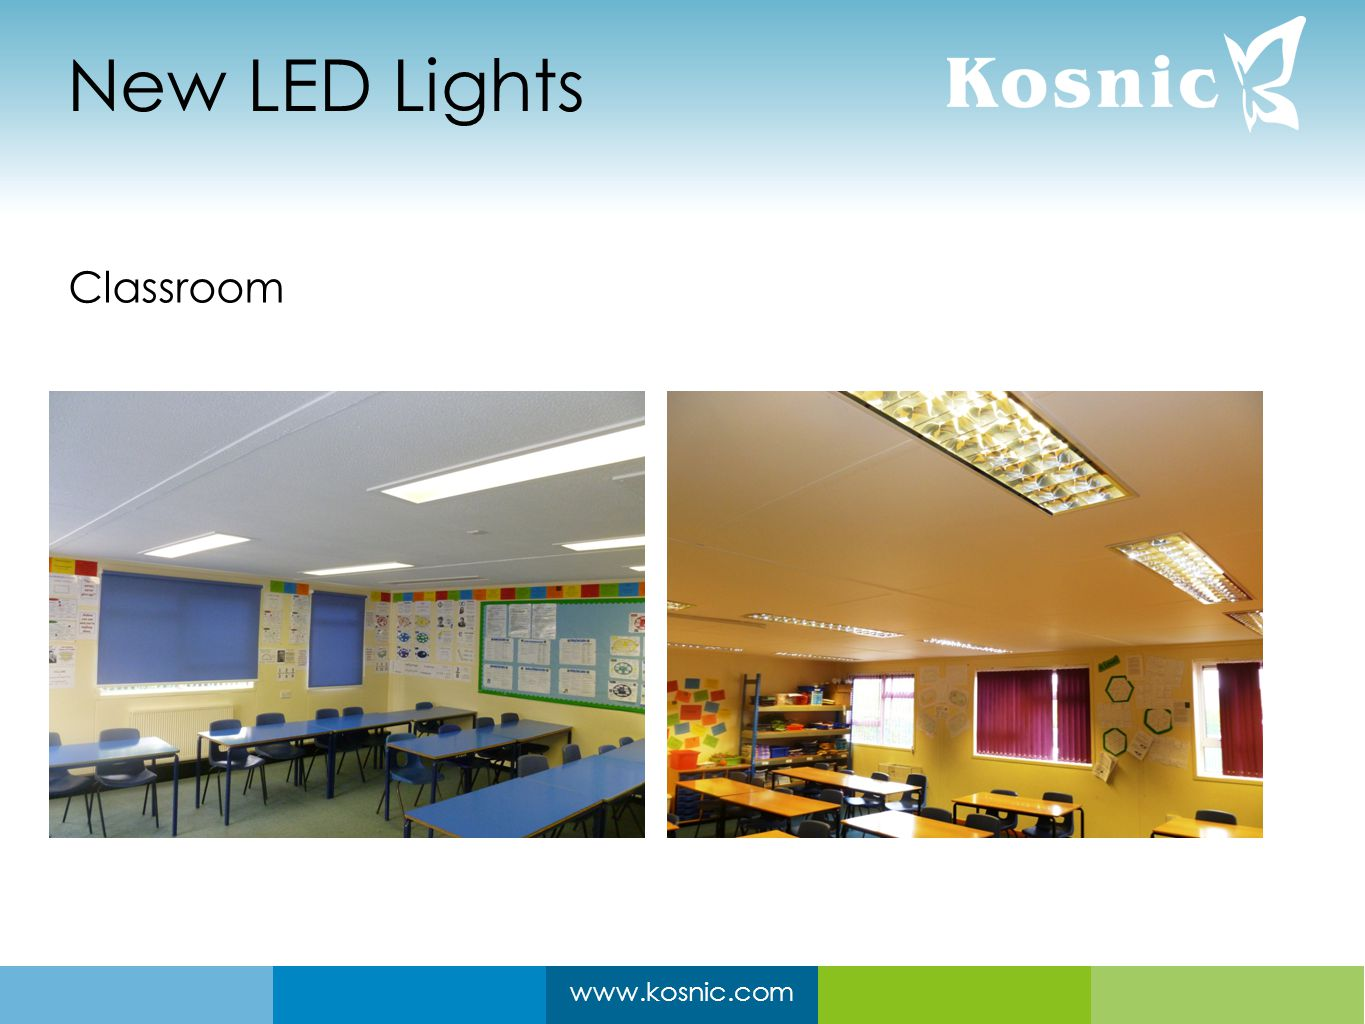 www.kosnic.com New LED Lights Classroom